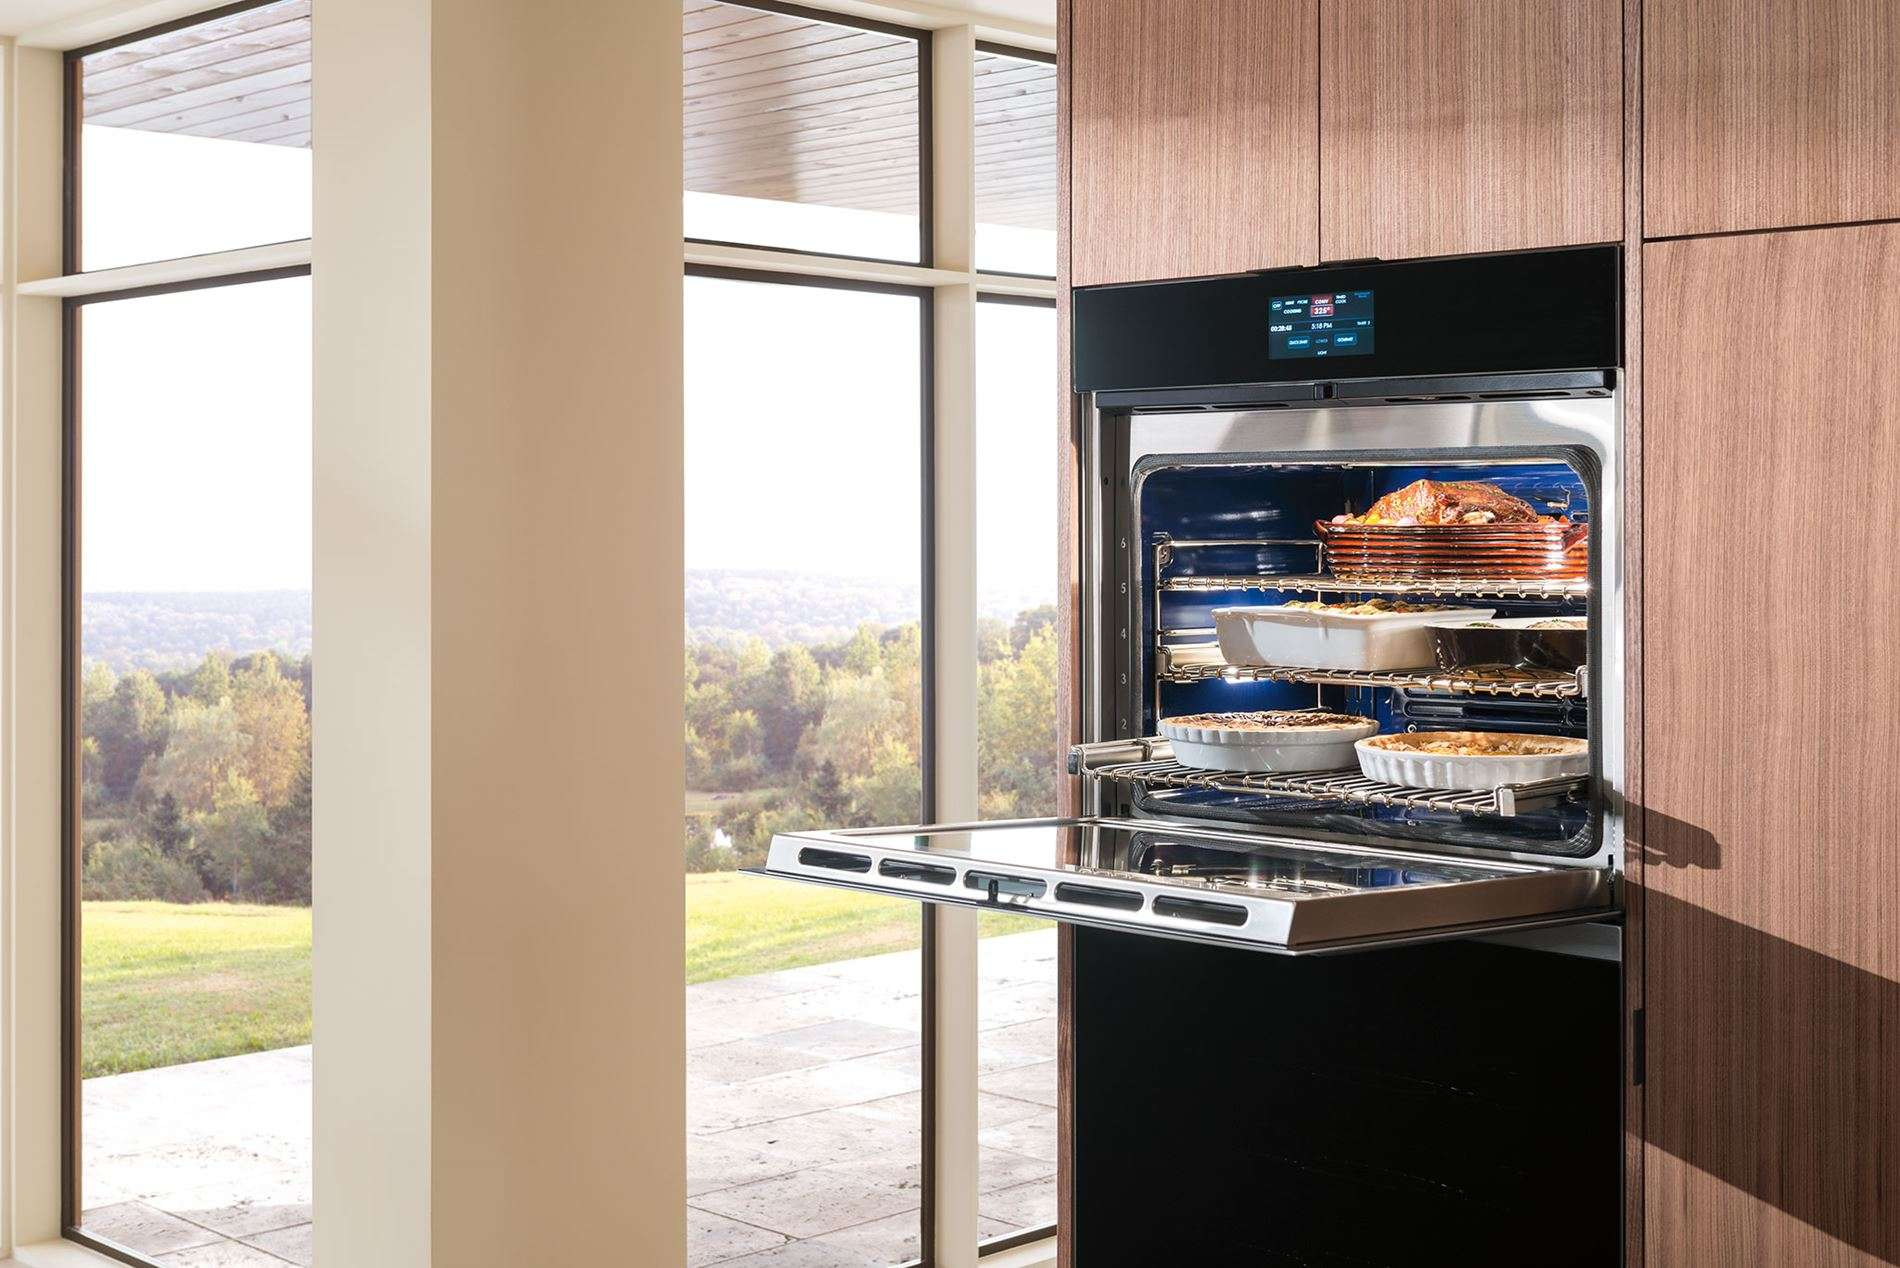 The New Wolf M Series Built-In Ovens